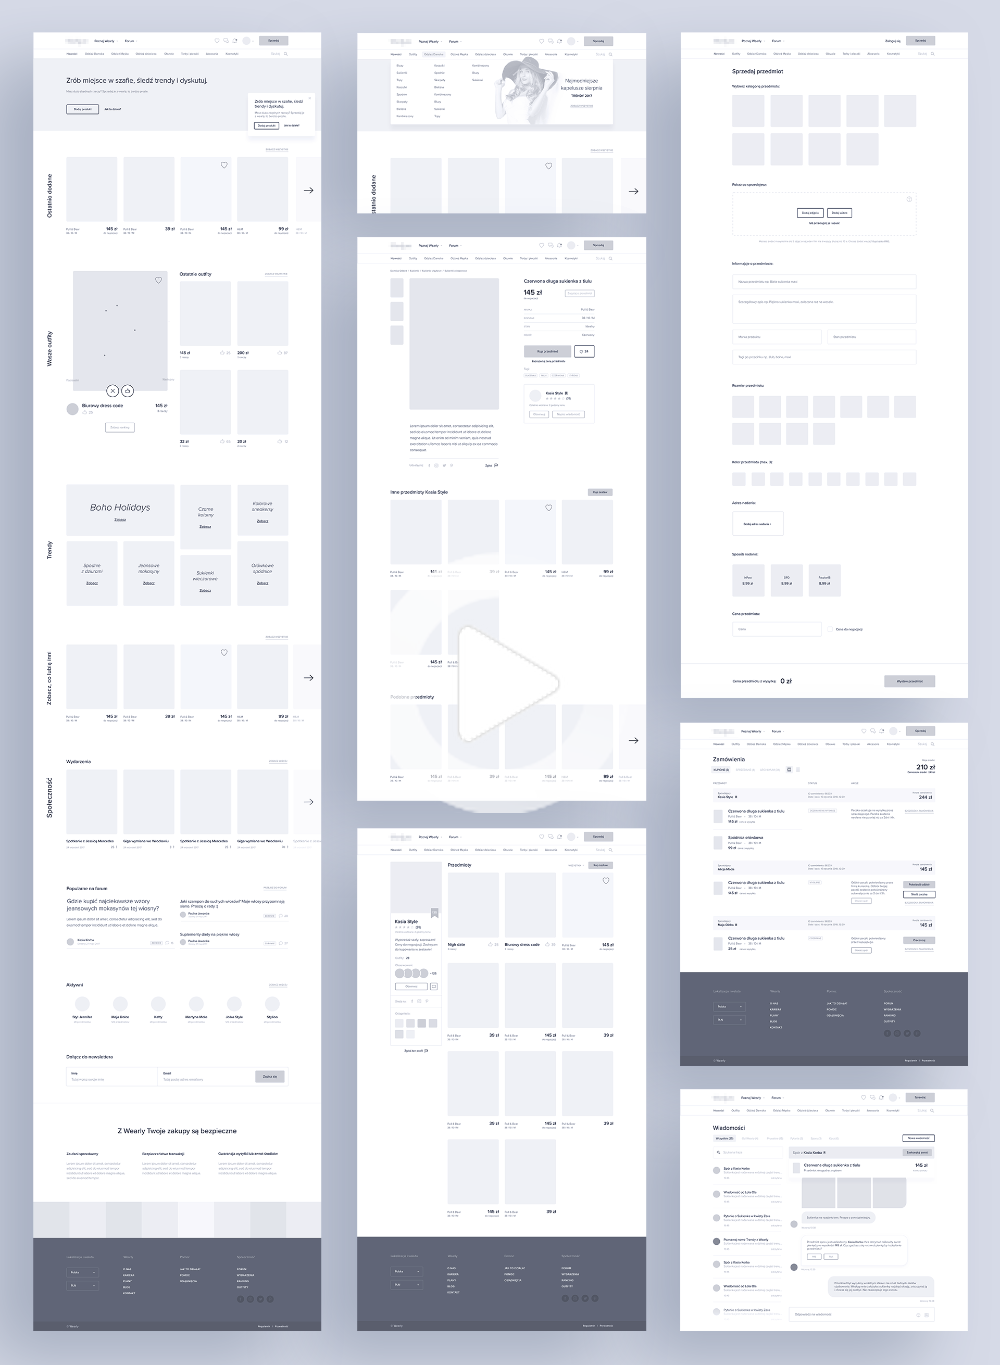 Website App Wireframe Examples For Creating A Solid Ux Design In 2020 App Wireframe Web Layout Design Wireframe Design